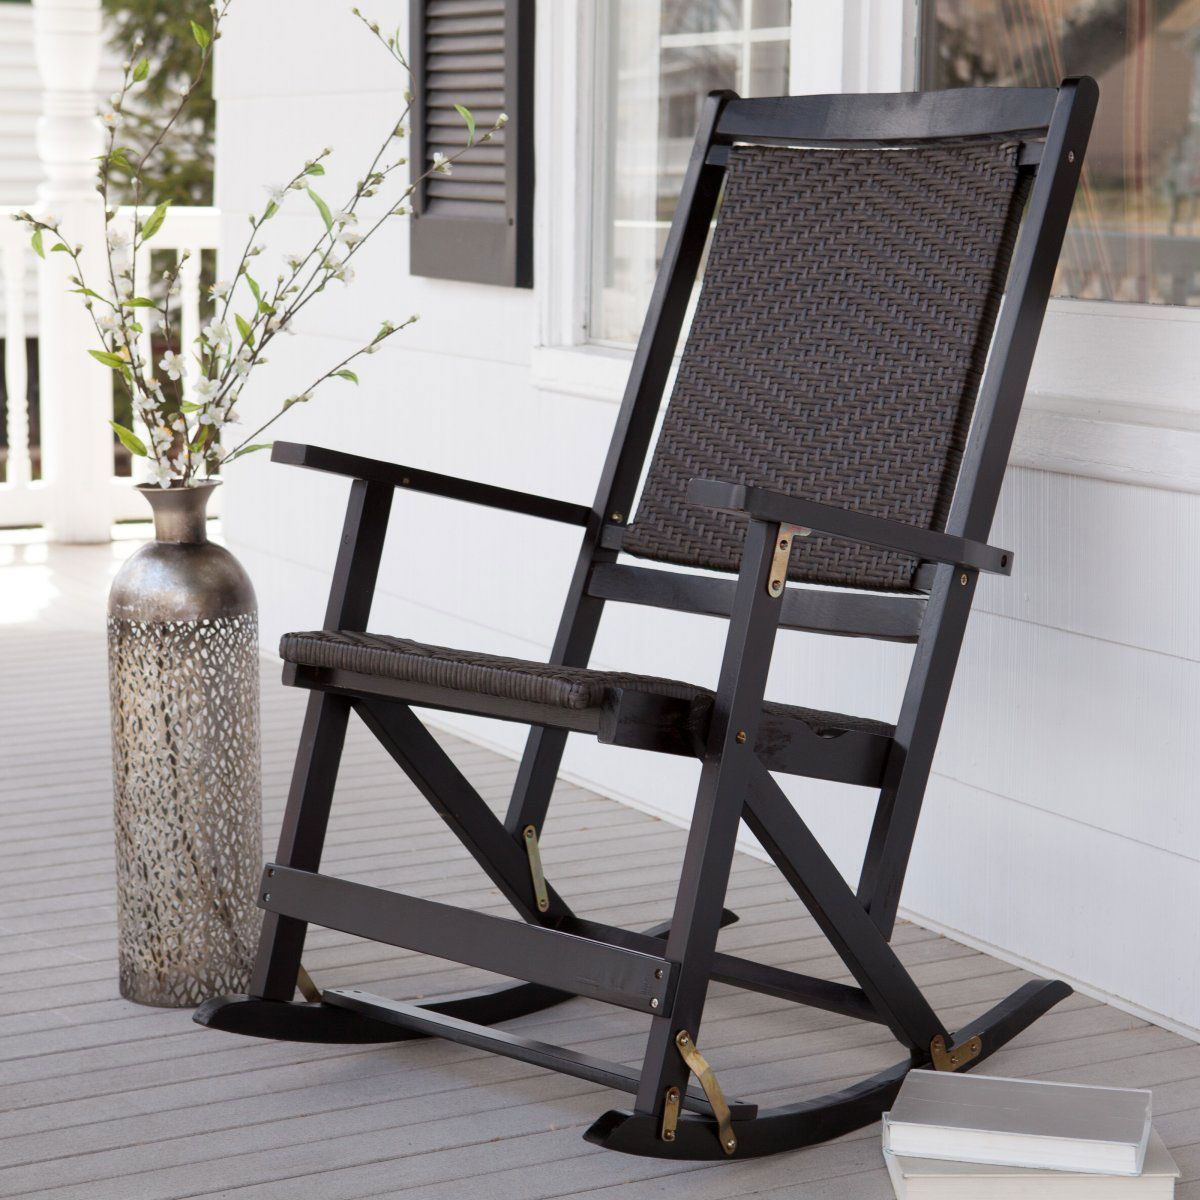 best rocking chair http://www.buynowsignal/rocking-chair/best